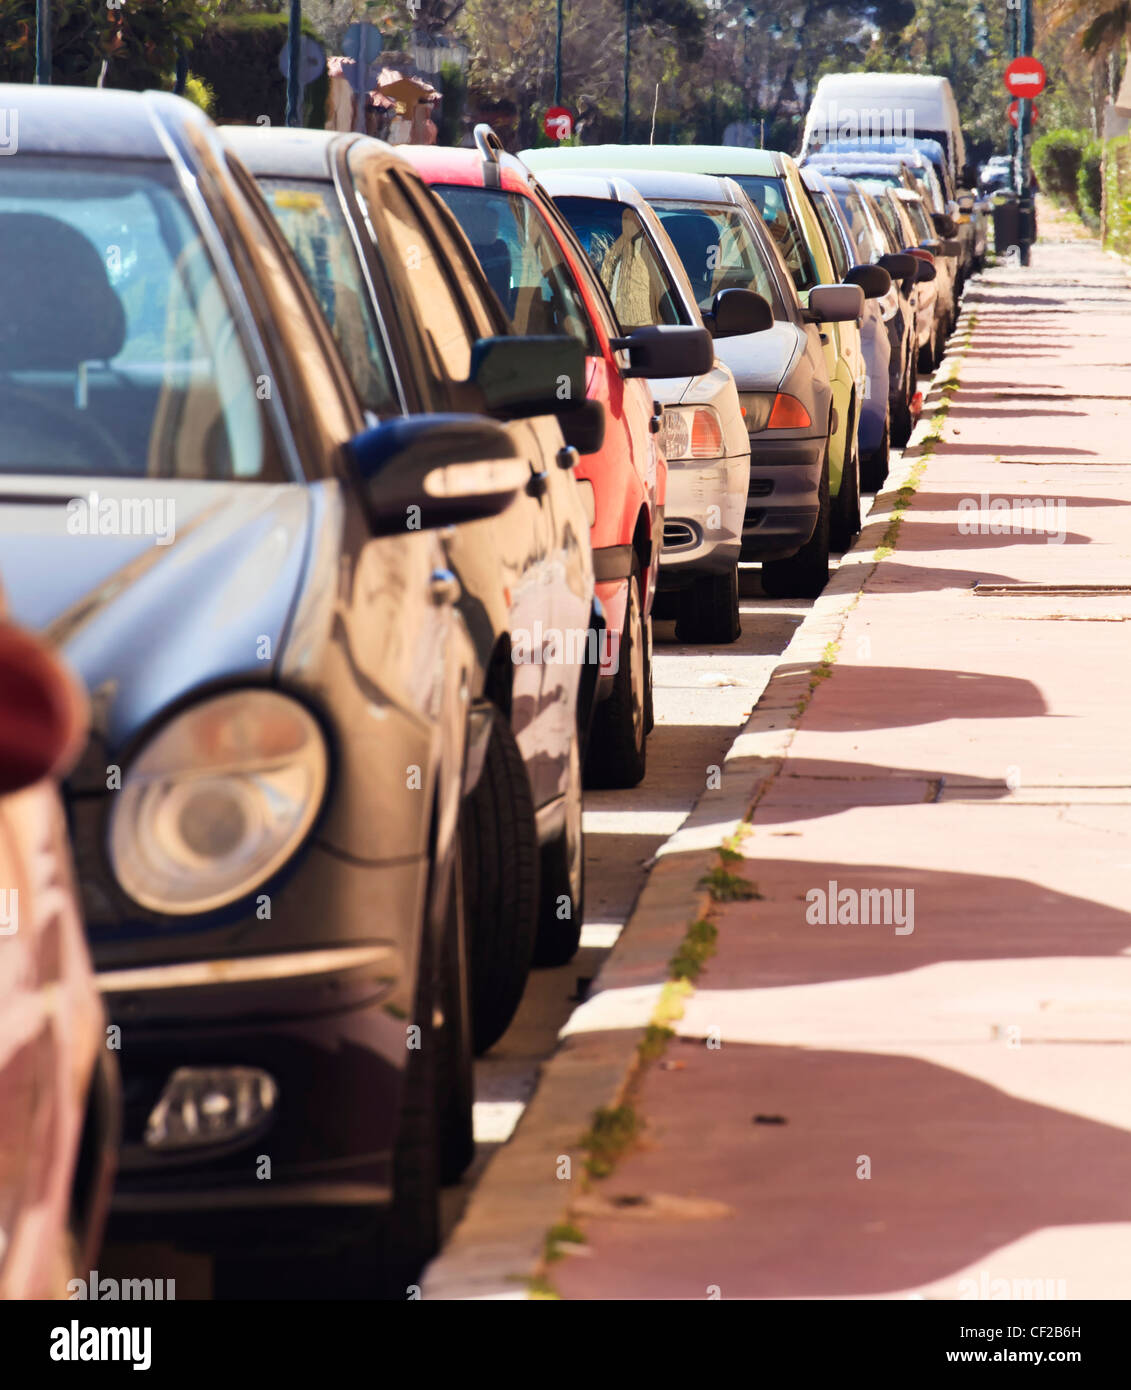 Cars Parked In Line On Street; Malaga Spain - Stock Image